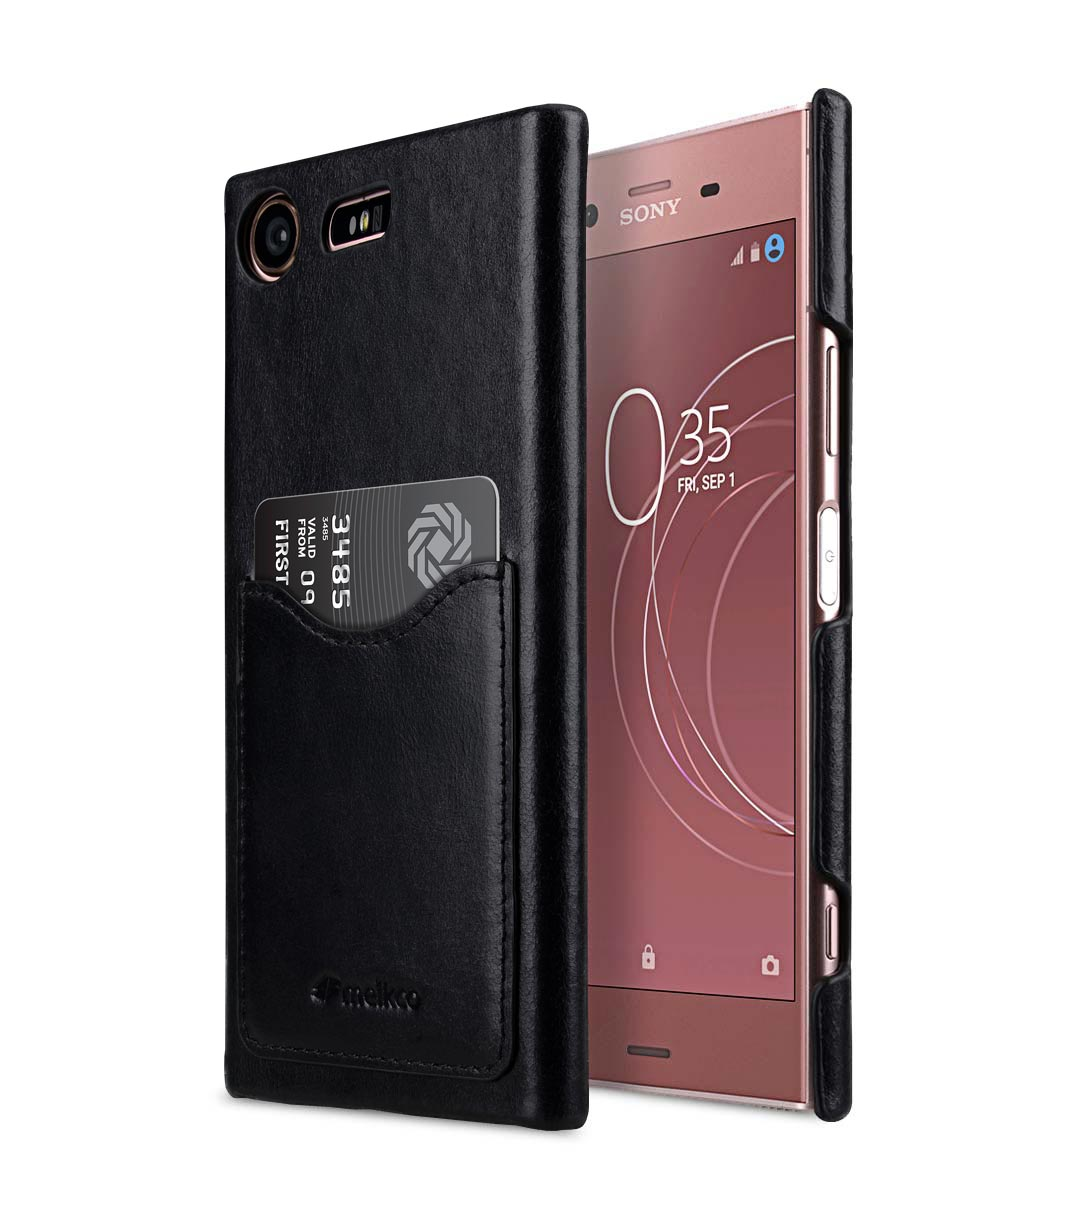 premium leather card slot cover case for sony xperia xz1 compact. Black Bedroom Furniture Sets. Home Design Ideas